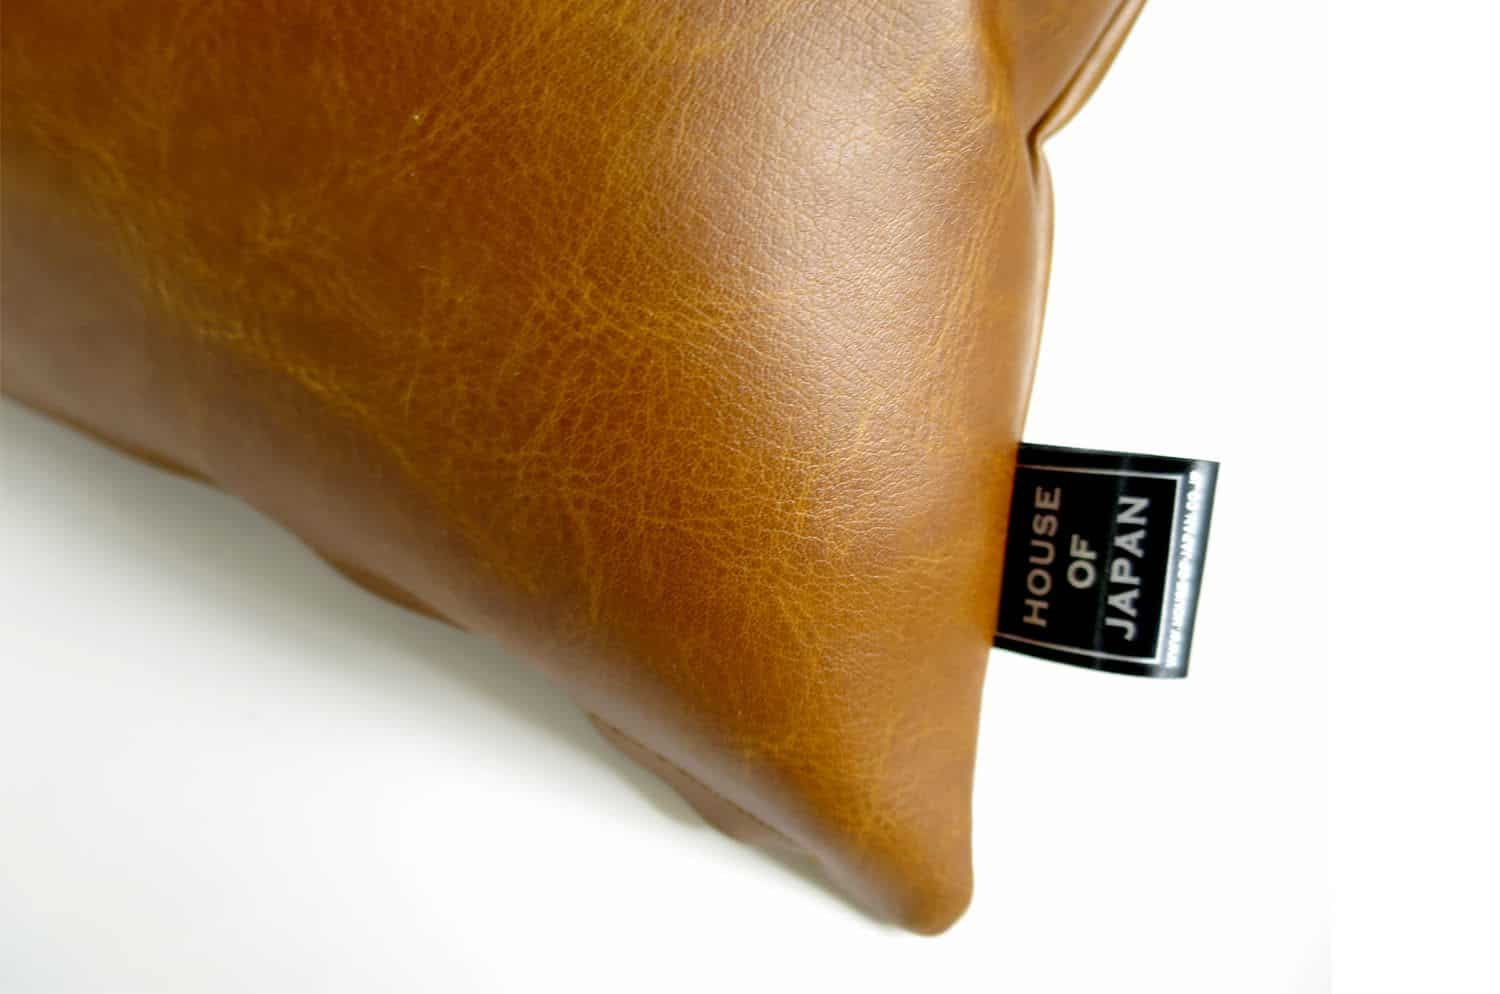 The Soft Synthetic Leather ソフトフェイクレザークッション ライトブラウン 45×20cm 中材付